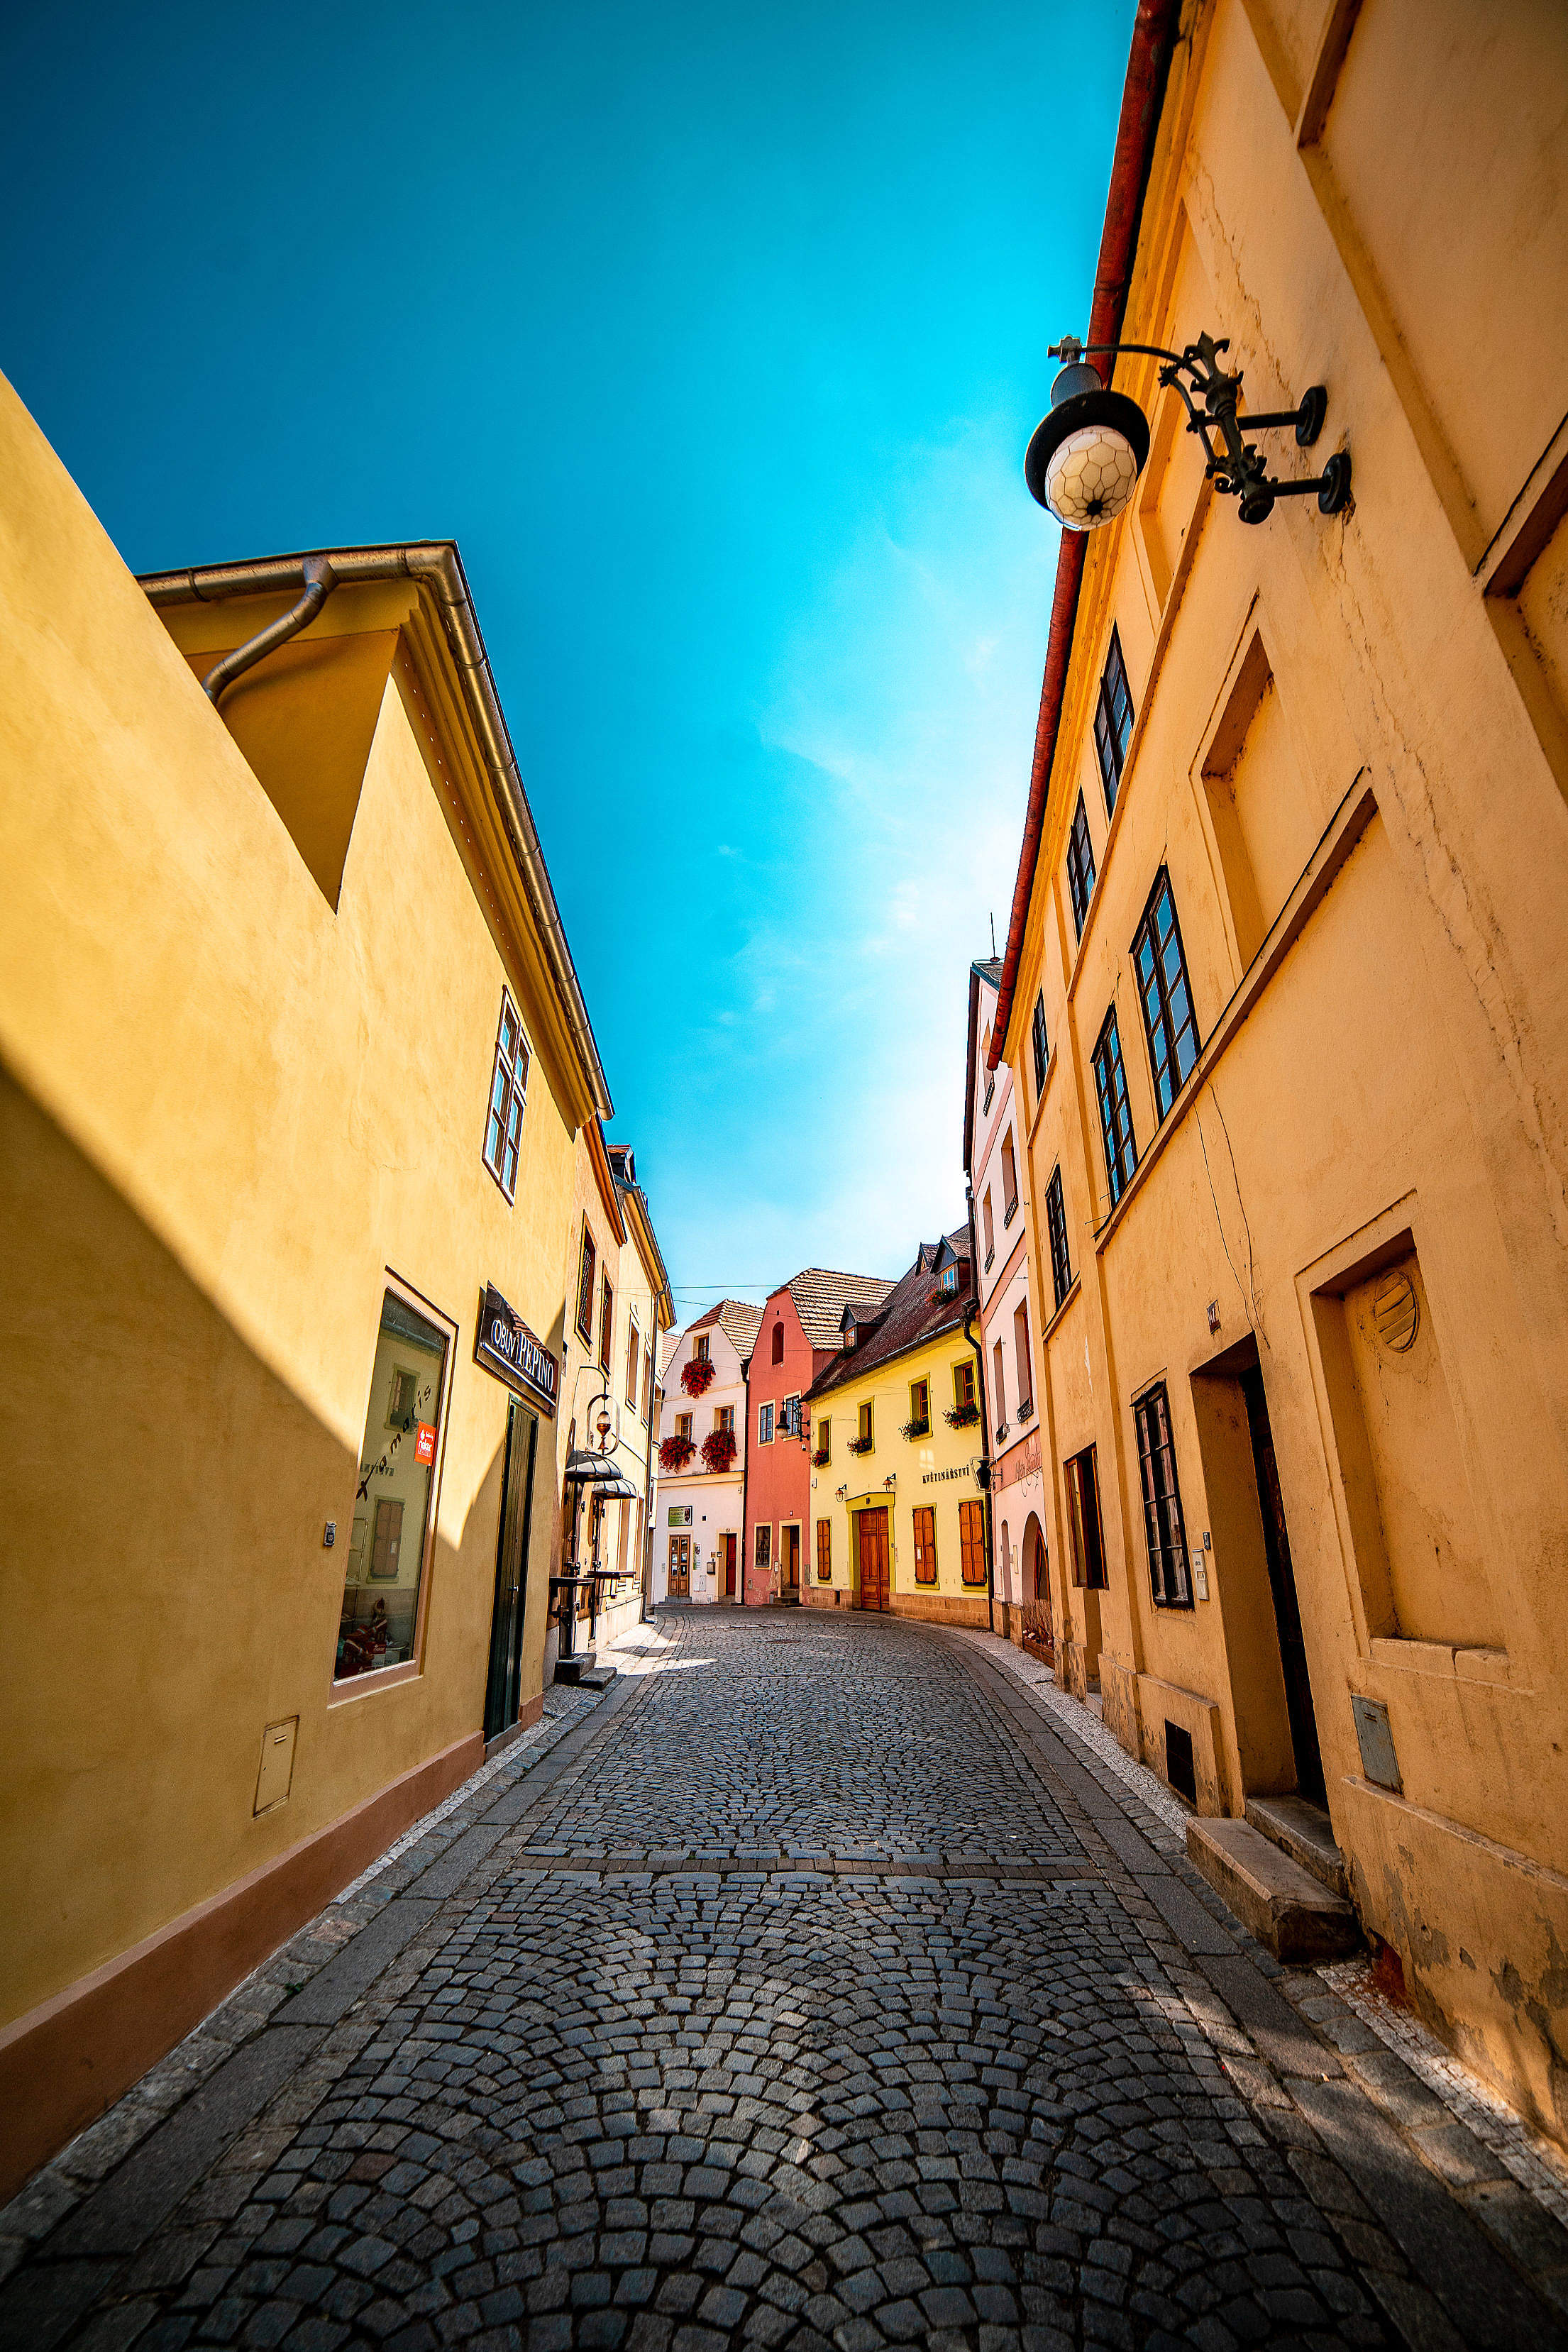 Beautiful Street in Louny City, Czechia Free Stock Photo